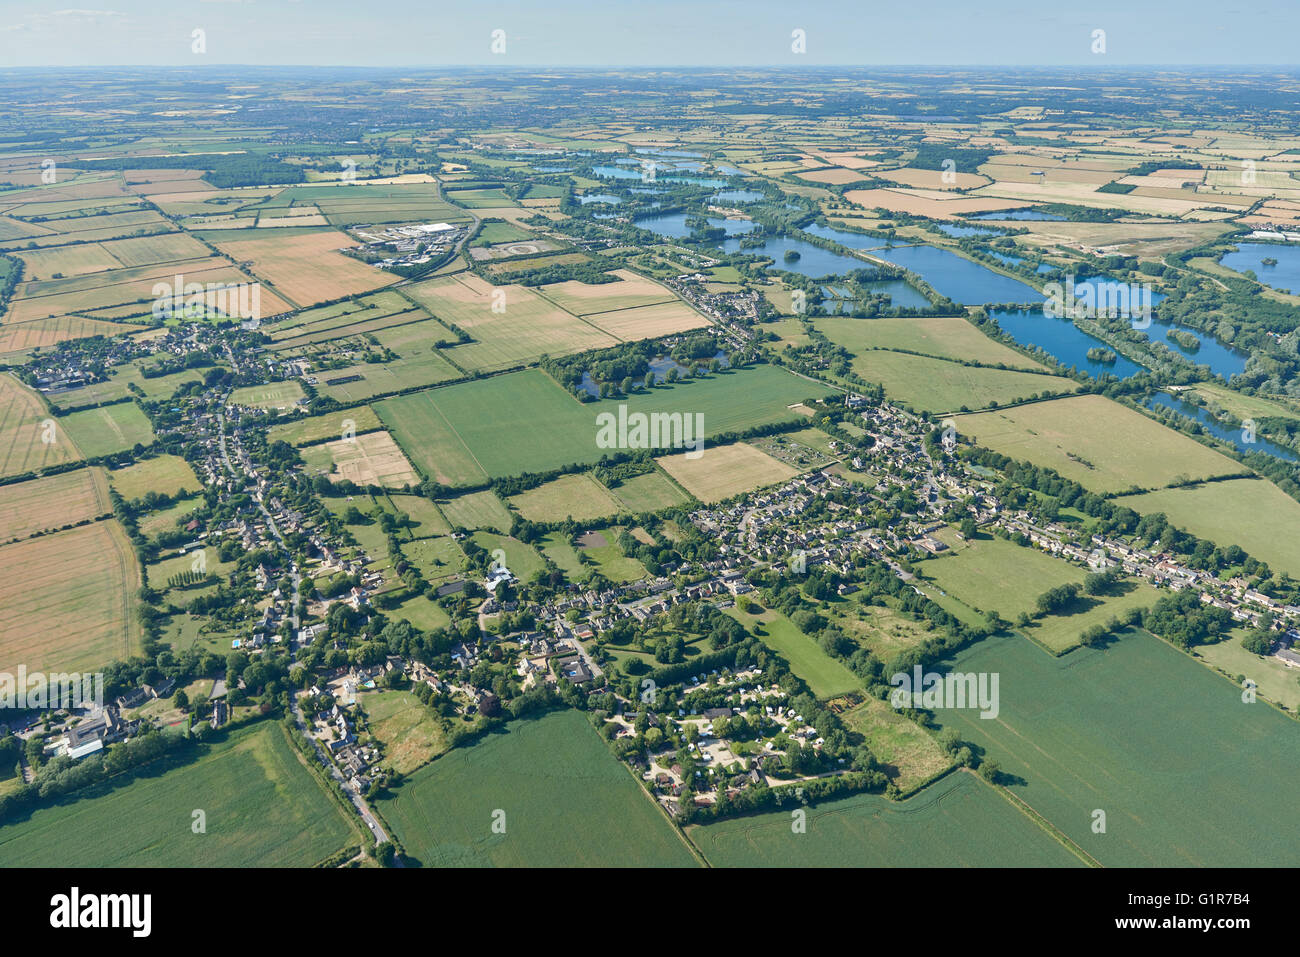 An aerial view of the Oxfordshire village of Standlake and surrounding countryside - Stock Image